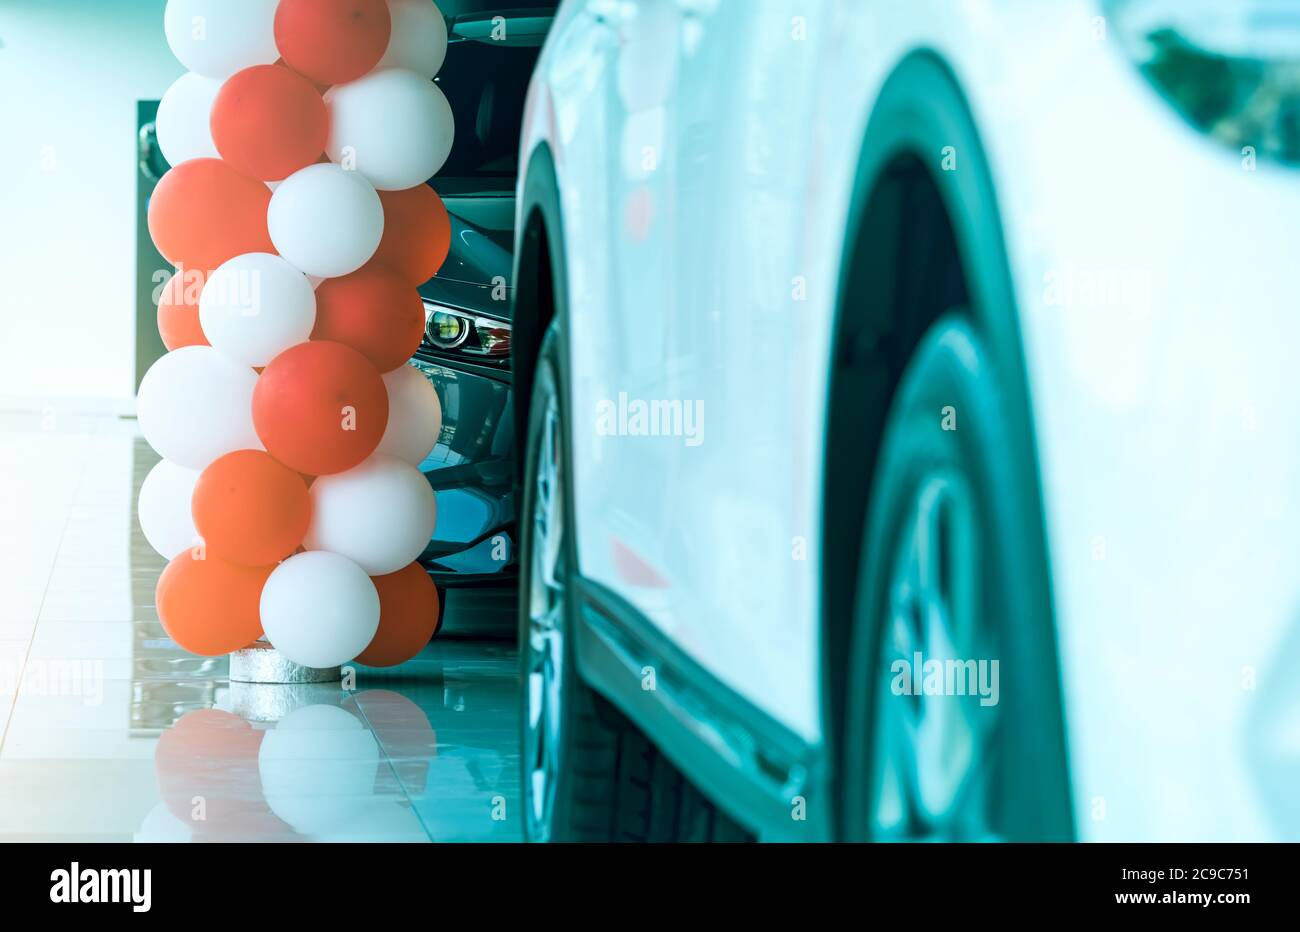 Closeup Headlamp Light Of New Luxury Suv Car Parked In Modern Showroom Car Dealership Showroom Office Automobile Leasing Concept Automotive Stock Photo Alamy